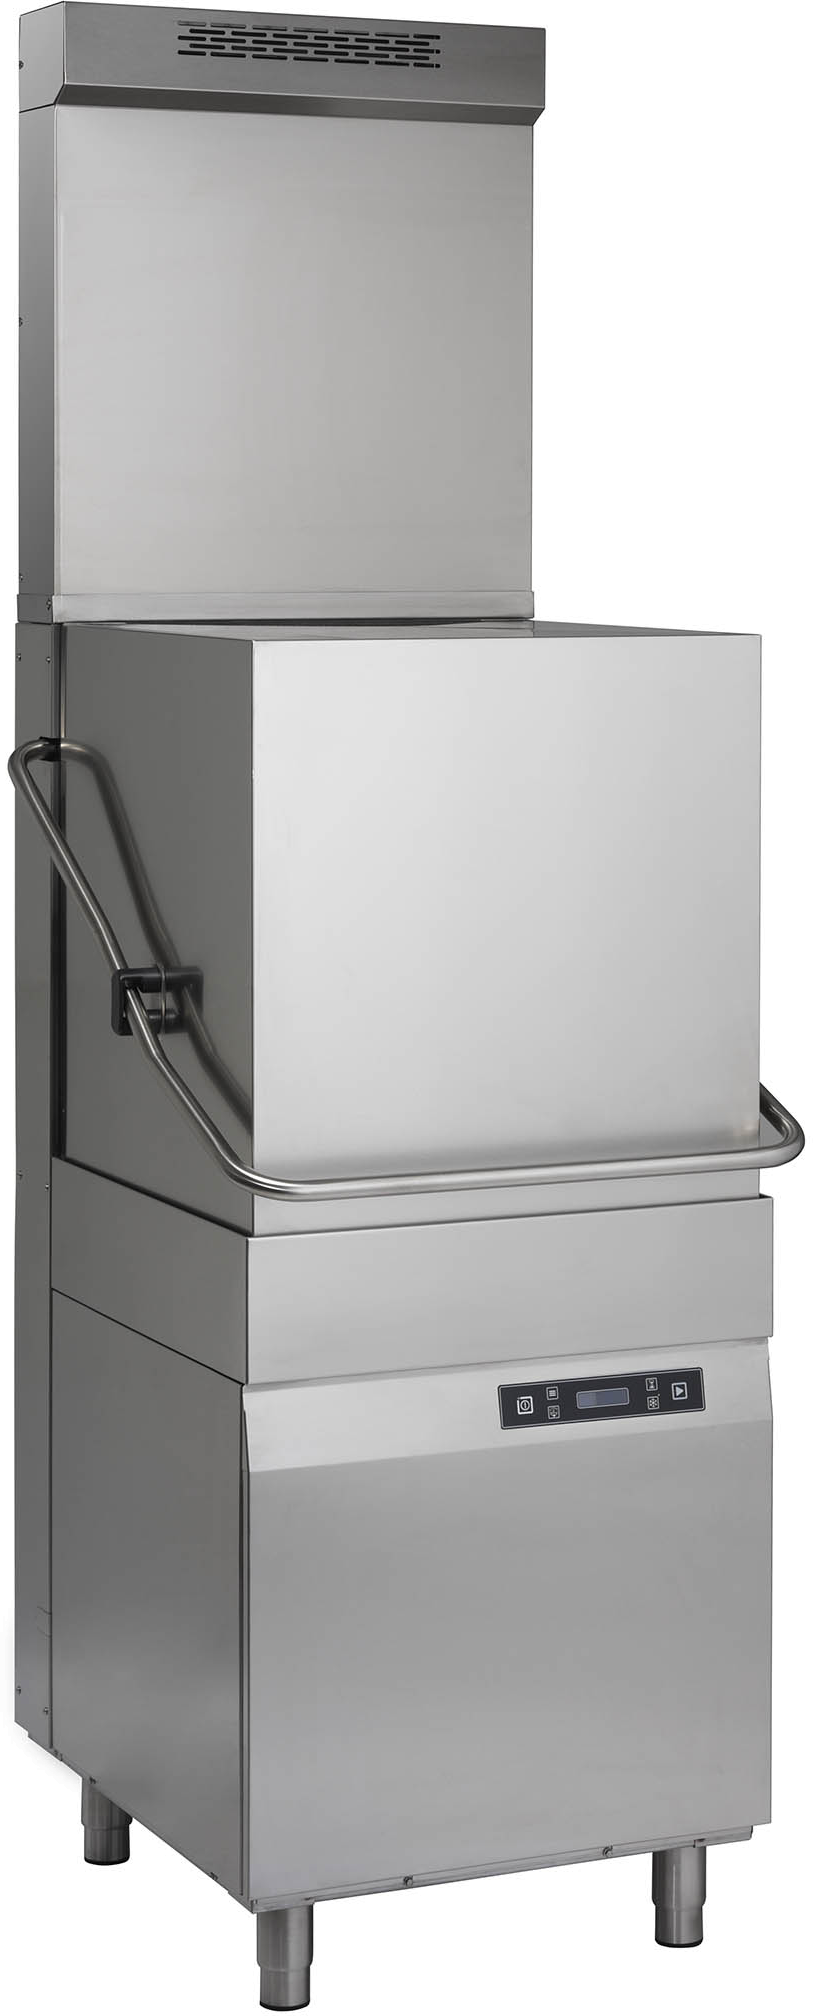 Clenaware Systems Regent Hood Energy Recovery Dishwasher